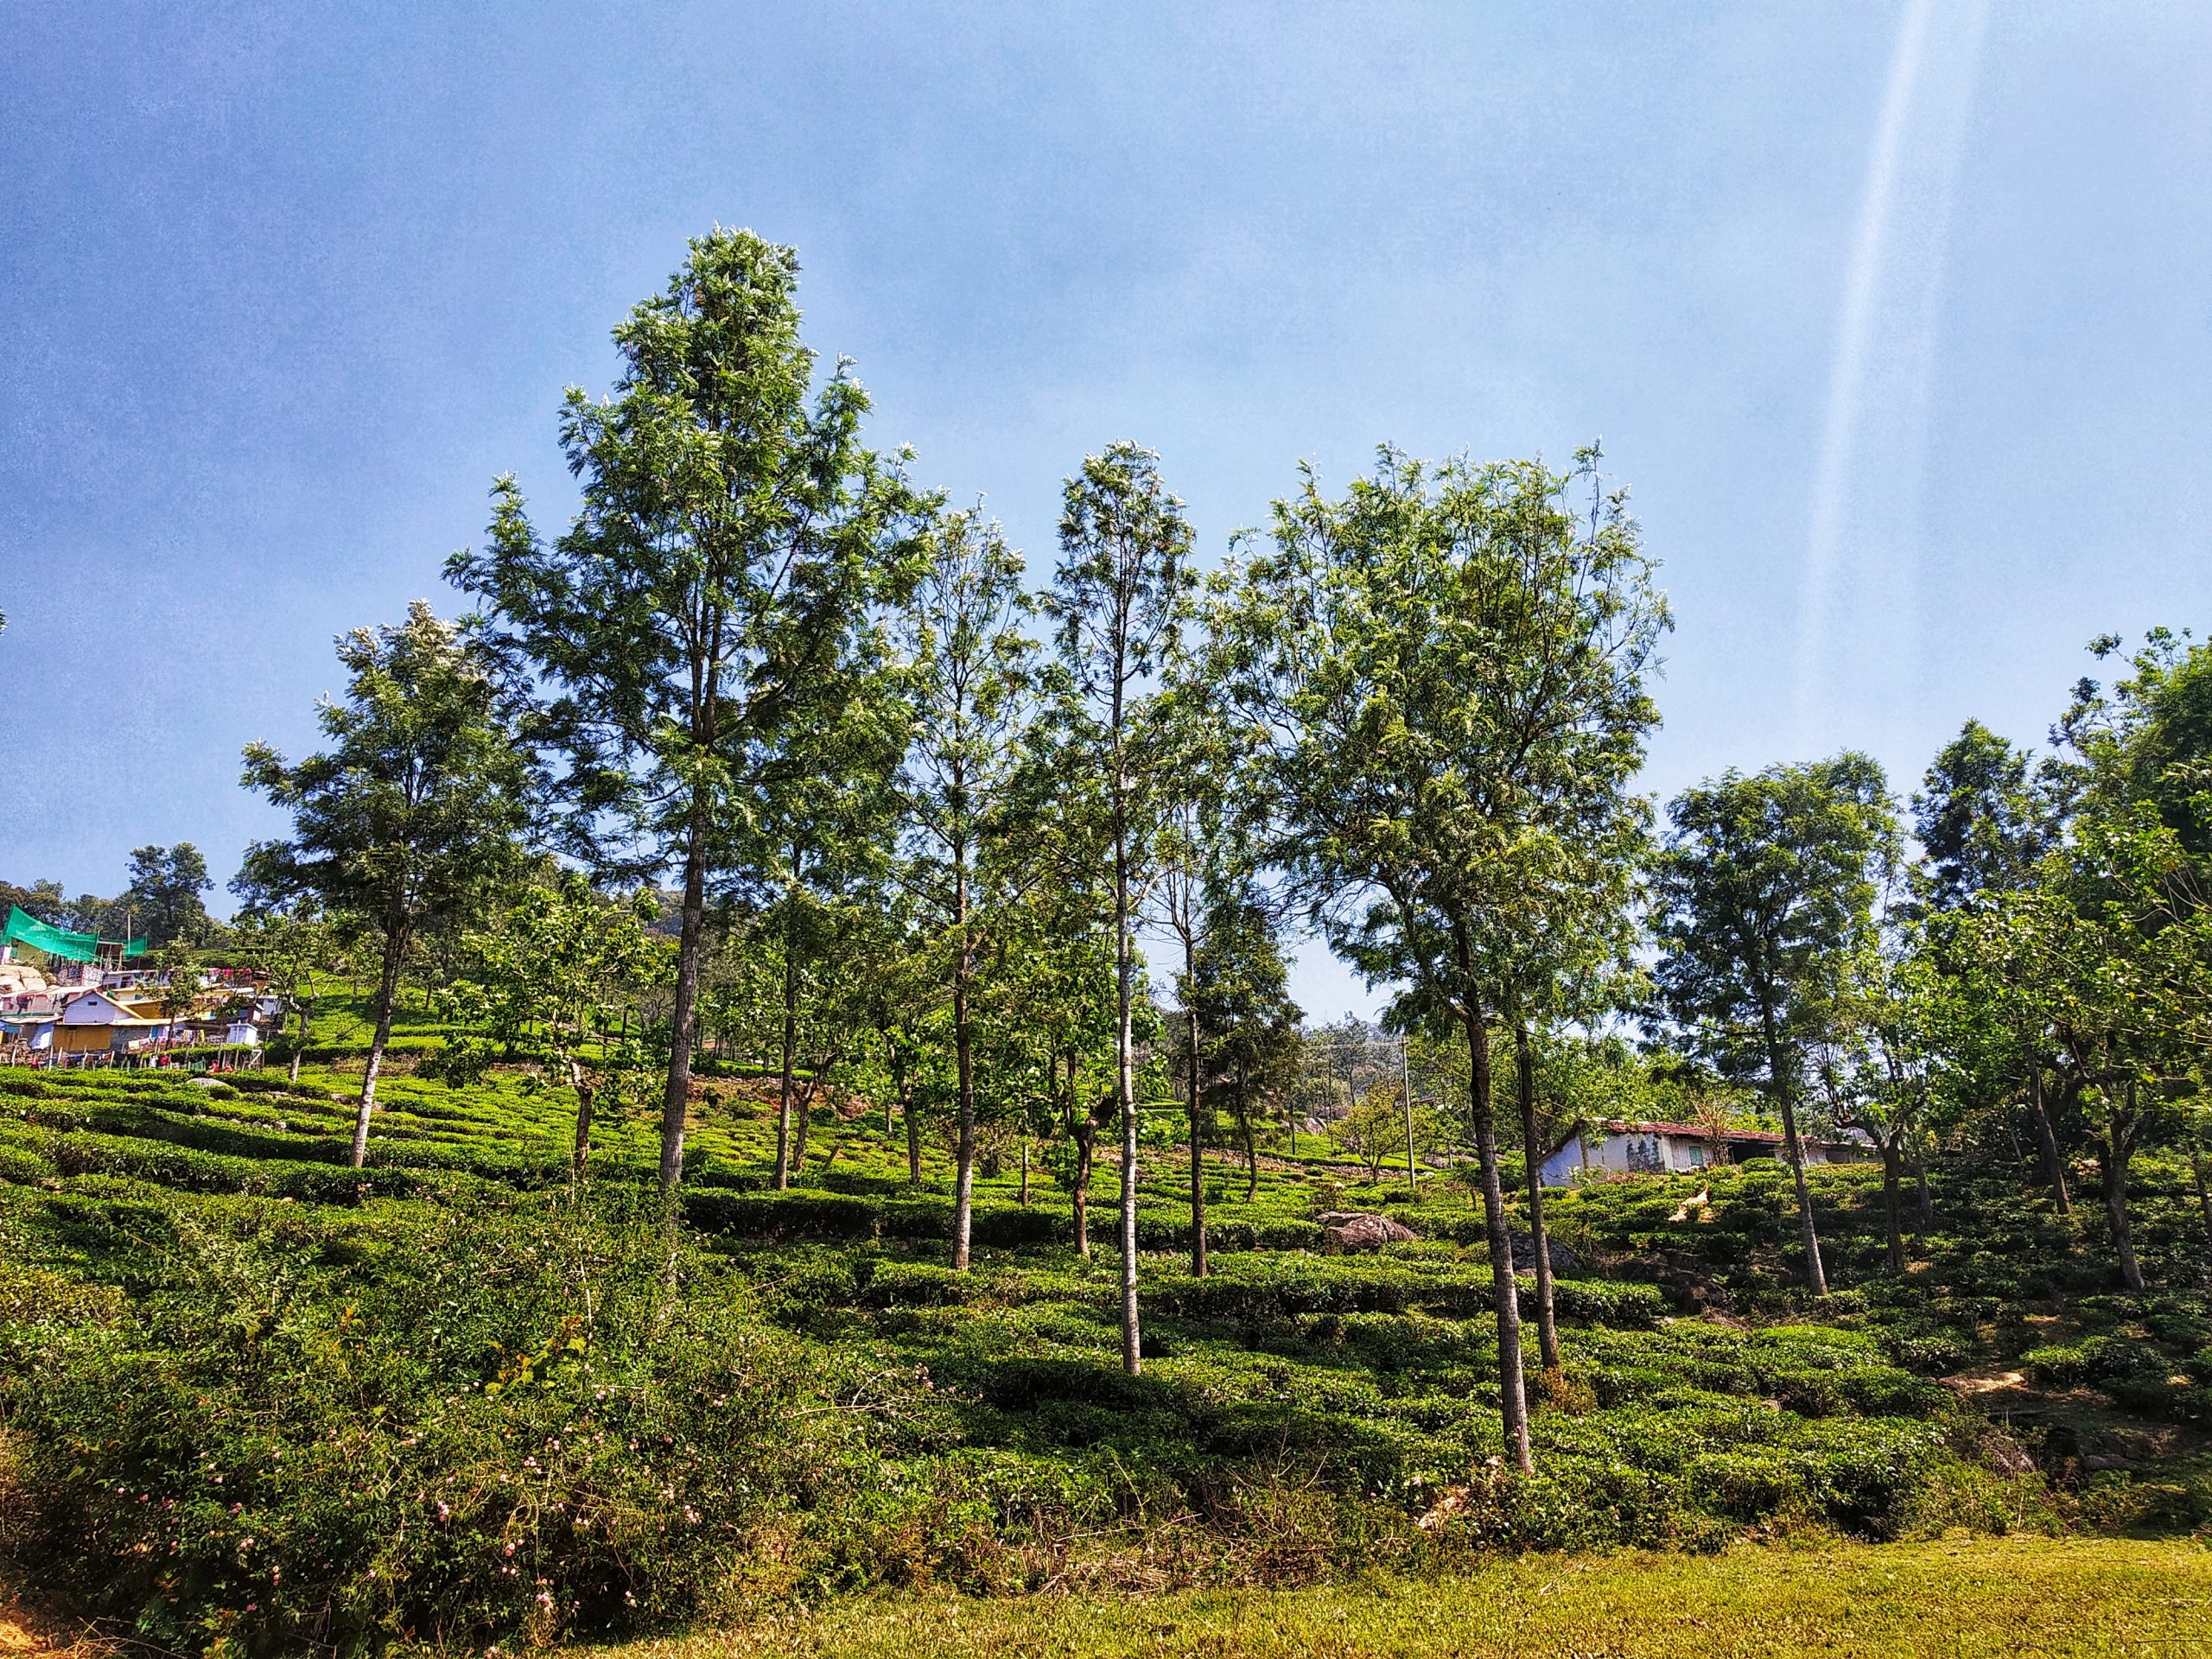 Trees at a hill station